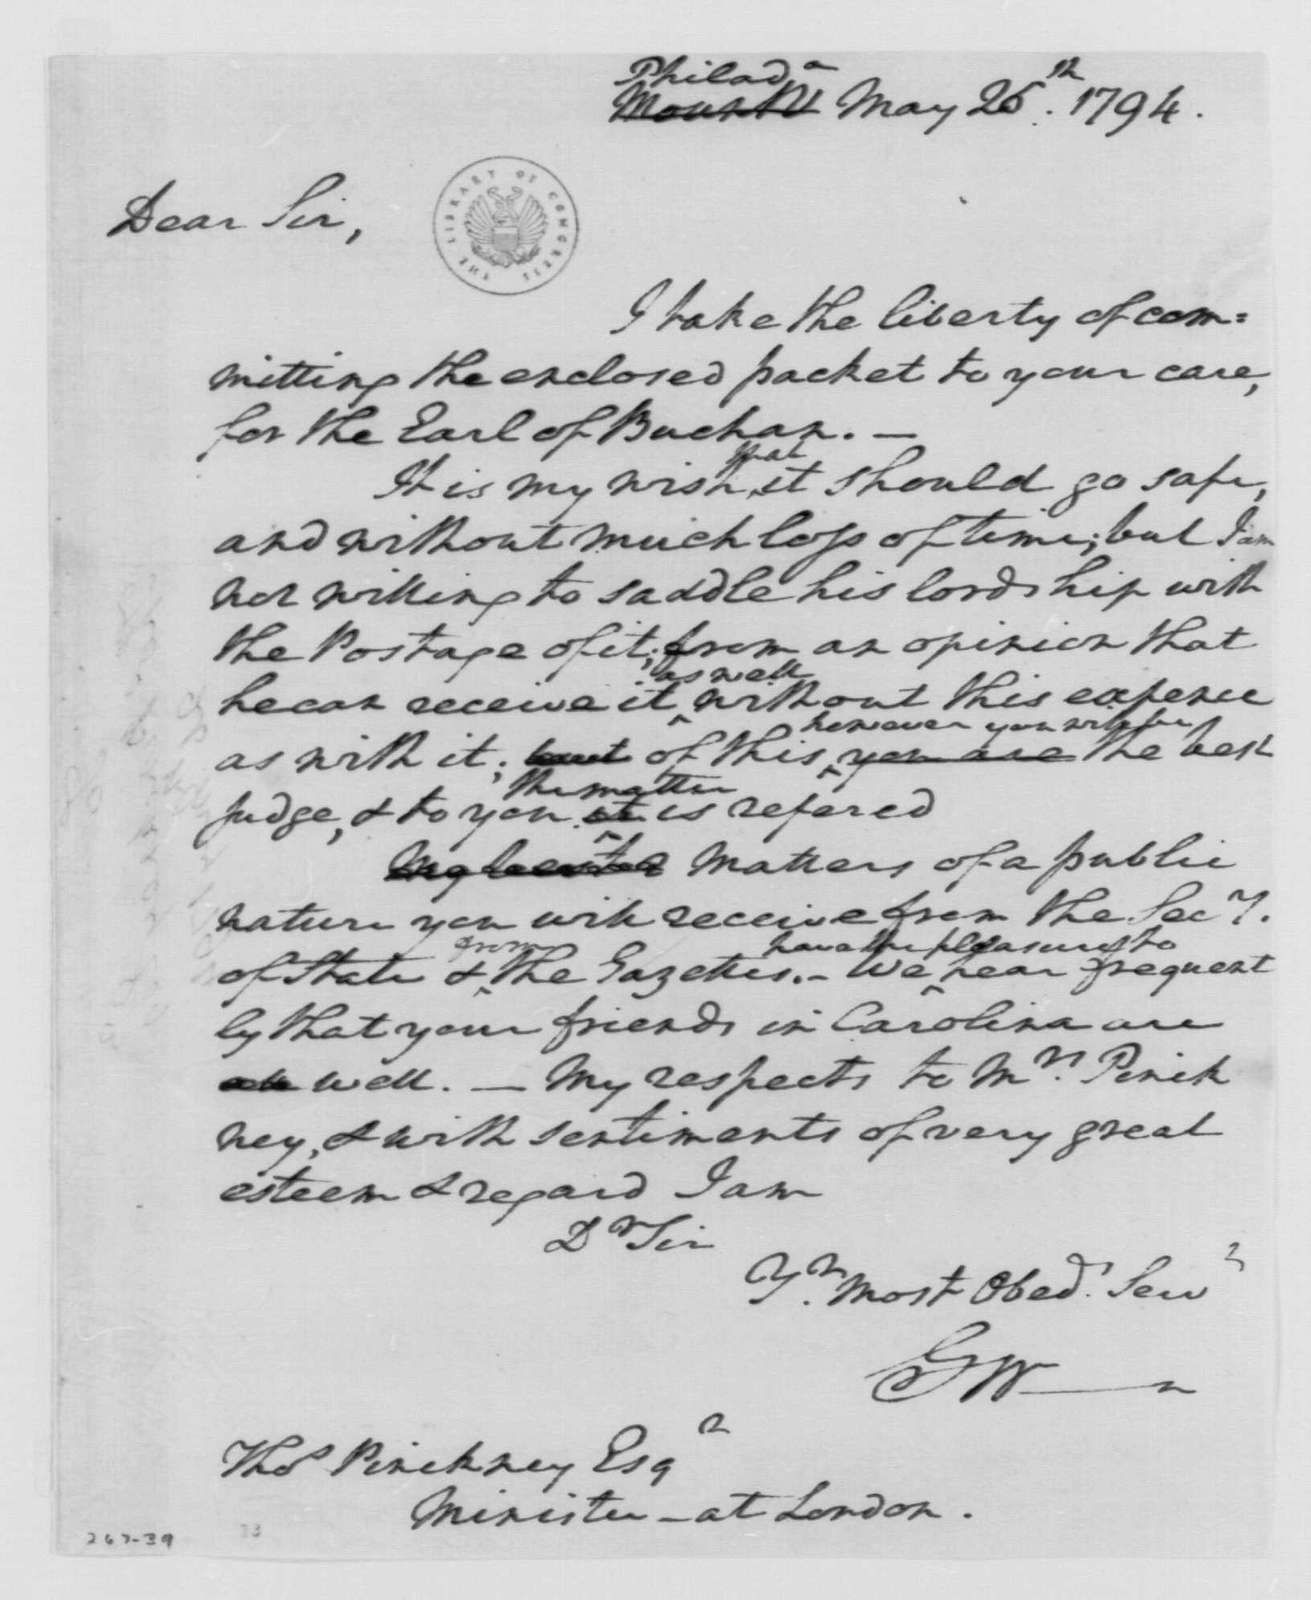 George Washington Papers, Series 4, General Correspondence: George Washington to Thomas Pinckney, May 26, 1794